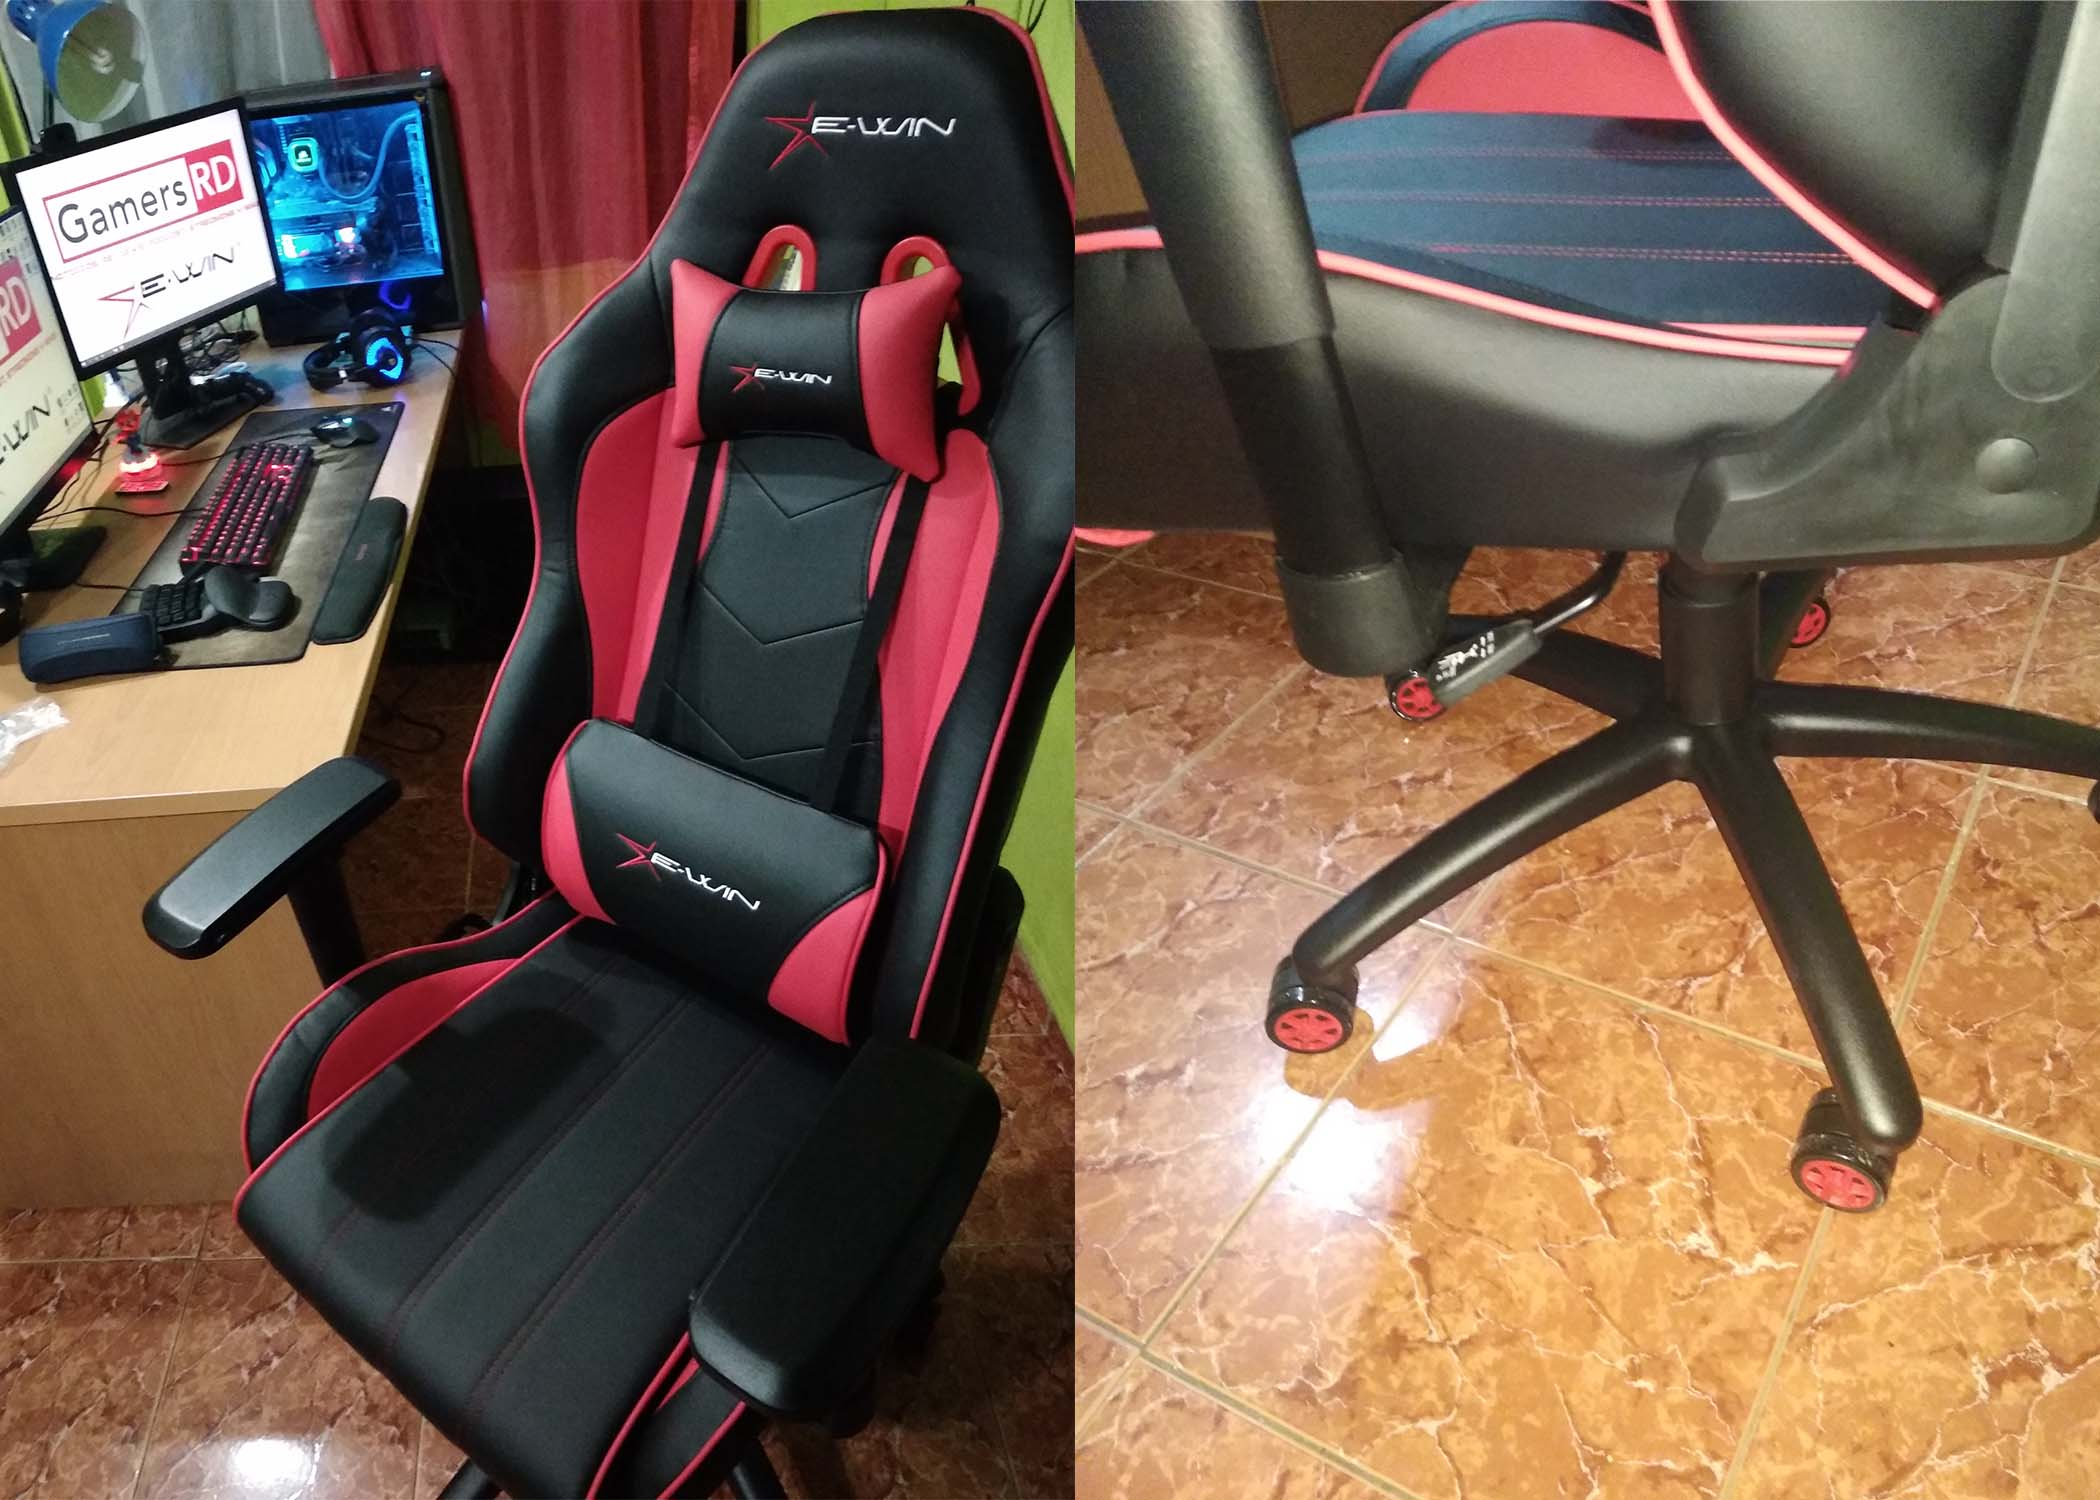 E-Win Racing Champions Series CPA Review, Chair,GamersRD